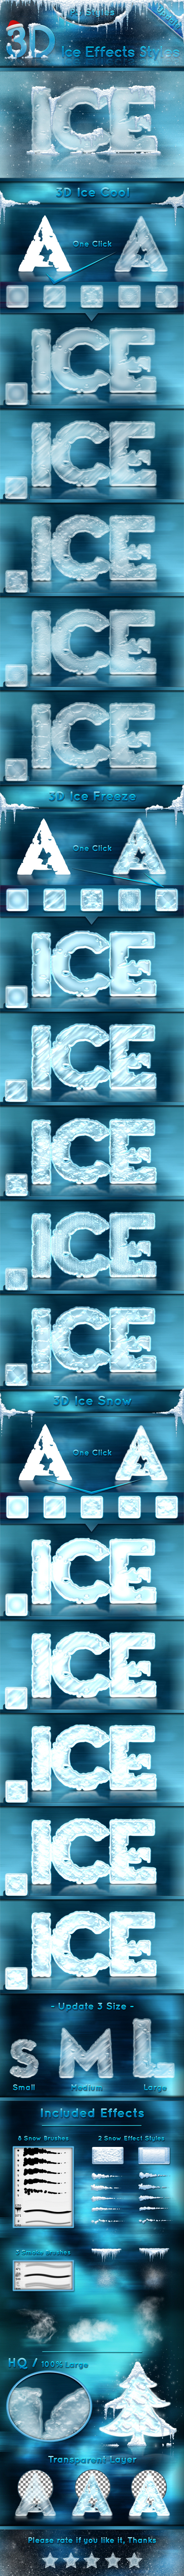 Graphicriver | 3D Ice Cool, Freeze & Snow Effects Styles Free Download free download Graphicriver | 3D Ice Cool, Freeze & Snow Effects Styles Free Download nulled Graphicriver | 3D Ice Cool, Freeze & Snow Effects Styles Free Download